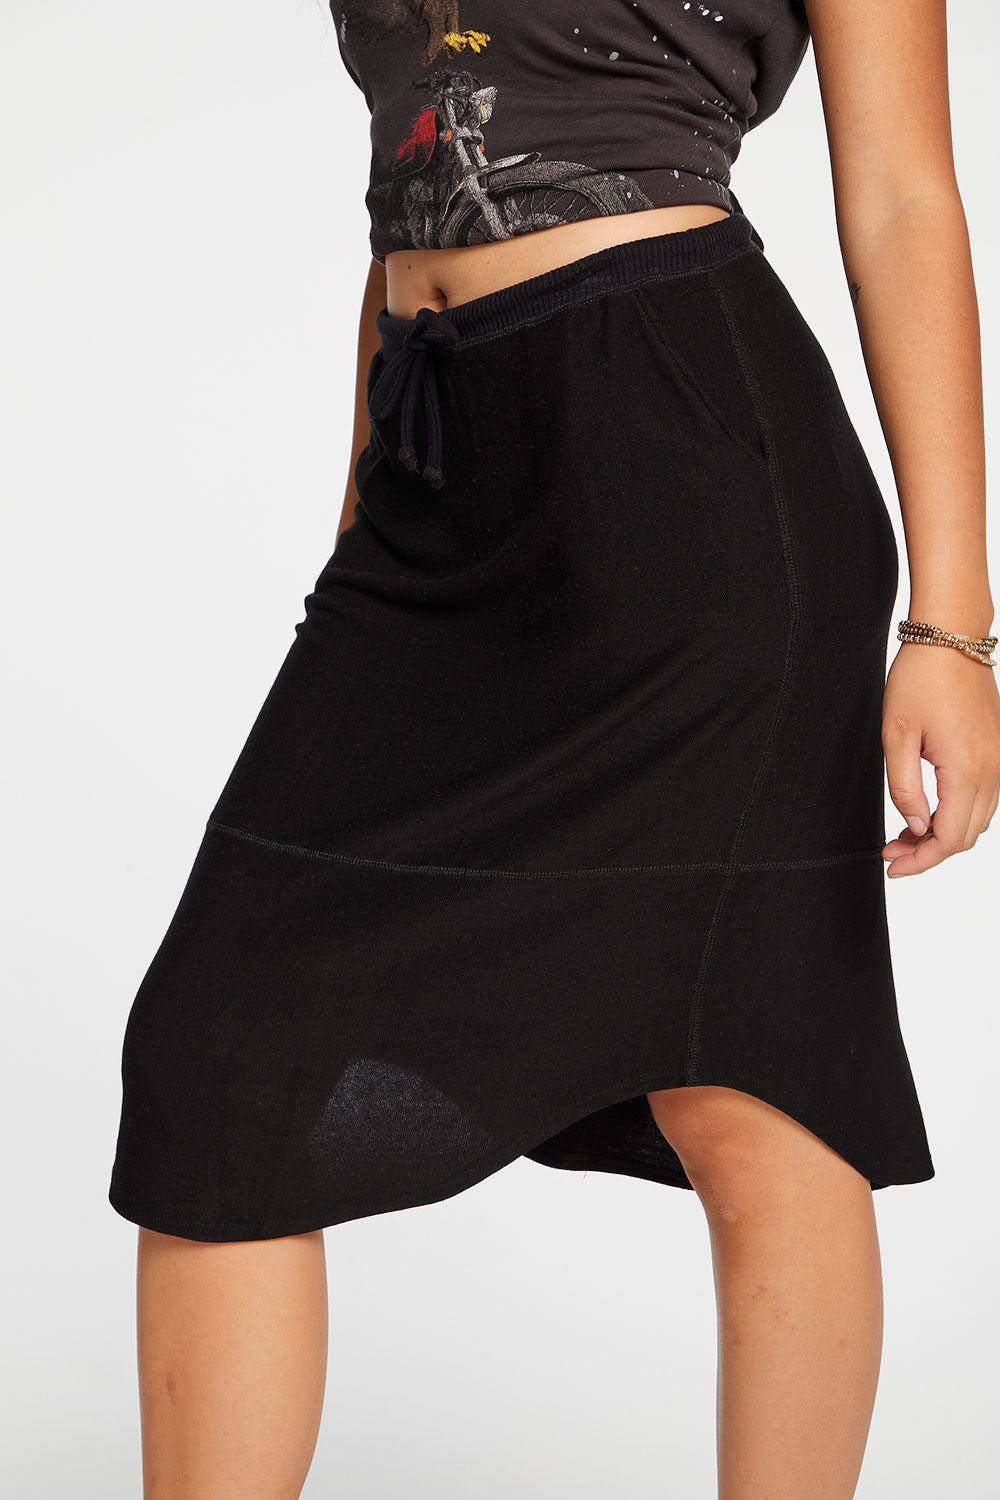 Cozy Knit Shirttail Midi Skirt in True Black WOMENS chaserbrand4.myshopify.com